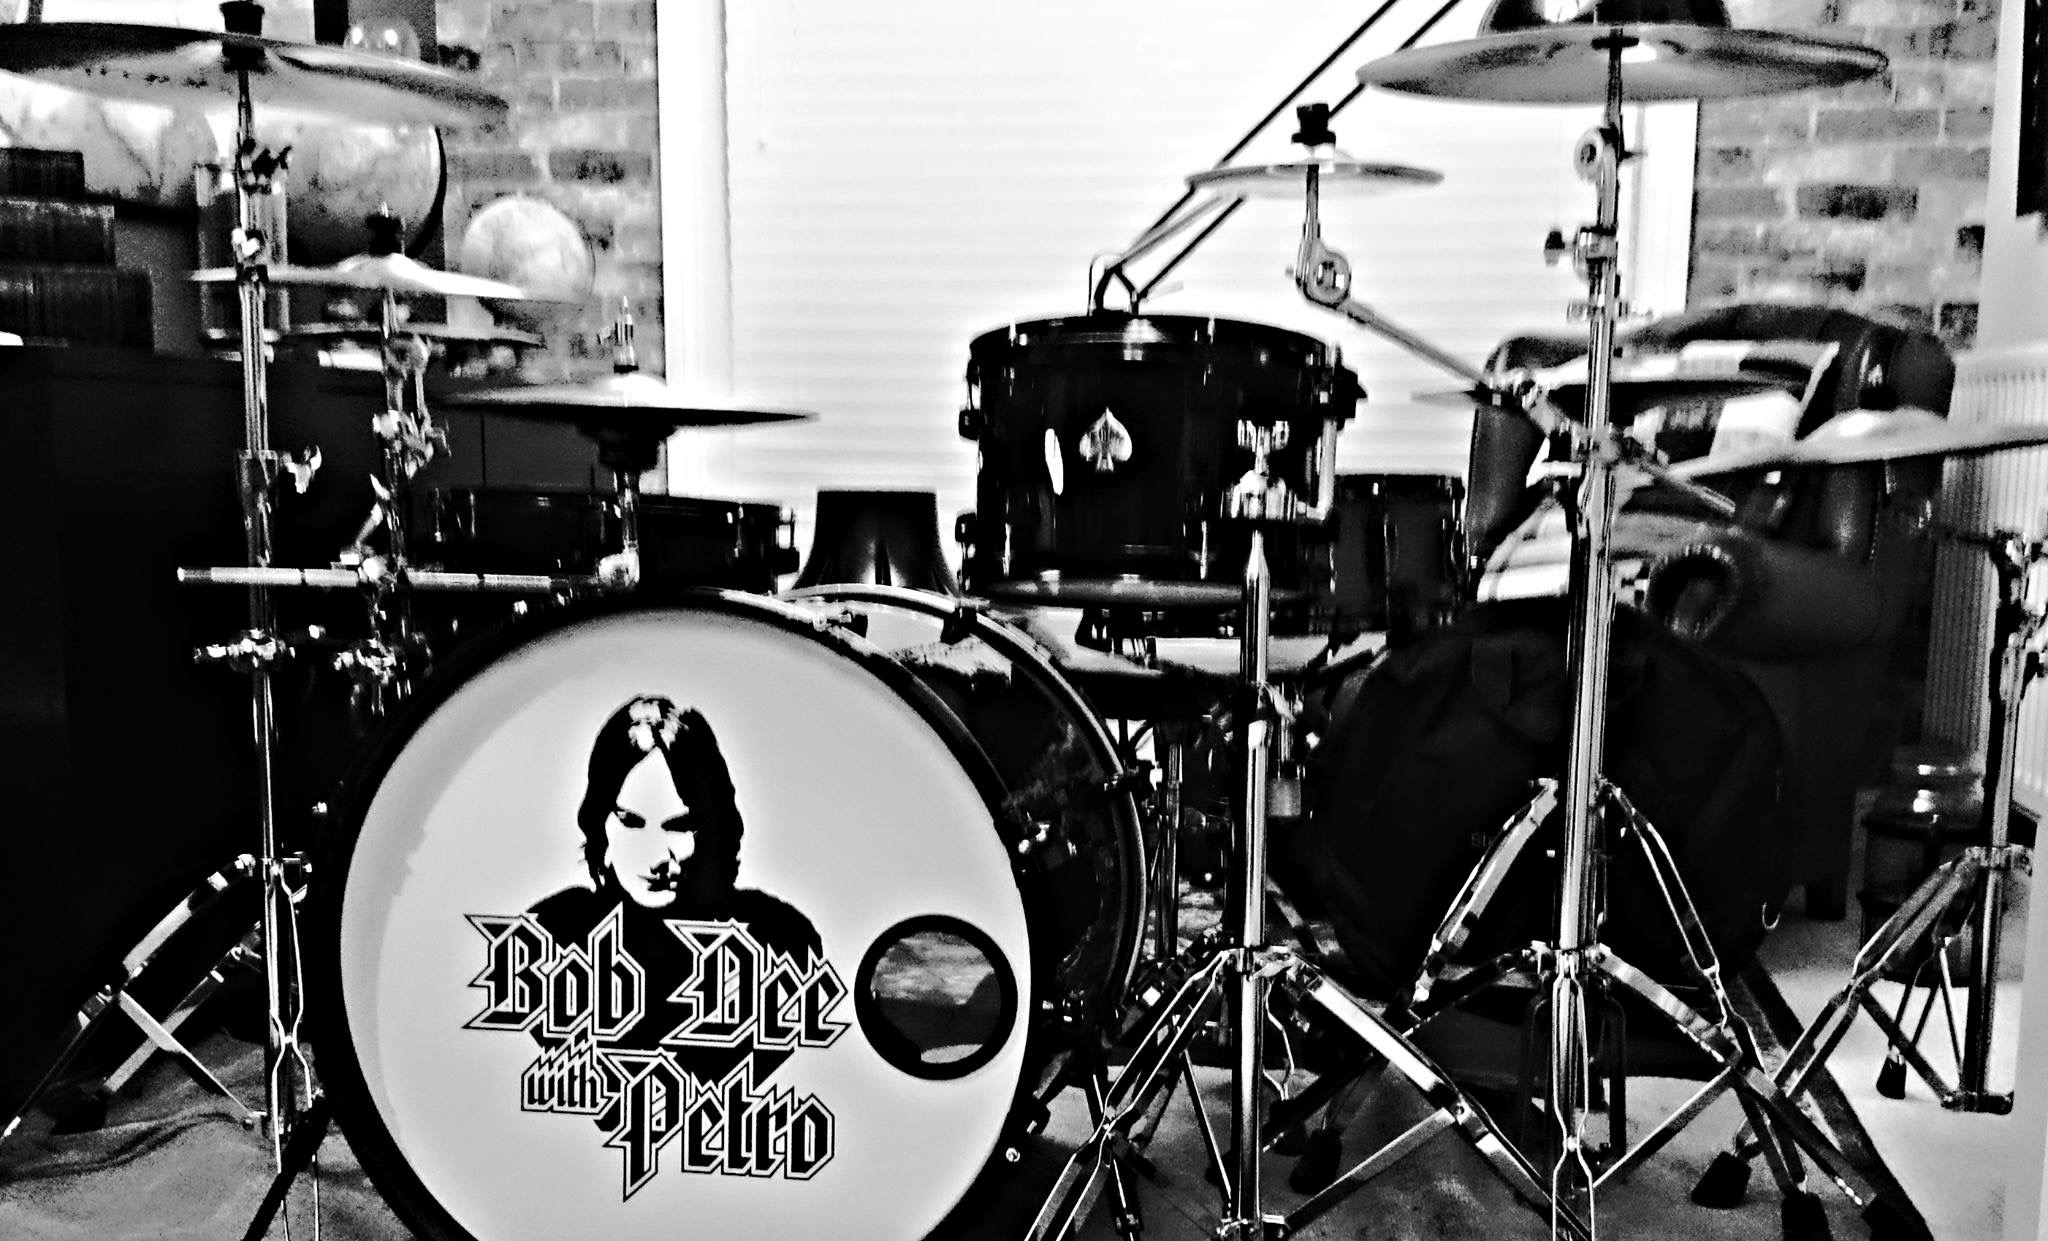 Custom Drum Skin for Bob Dee!